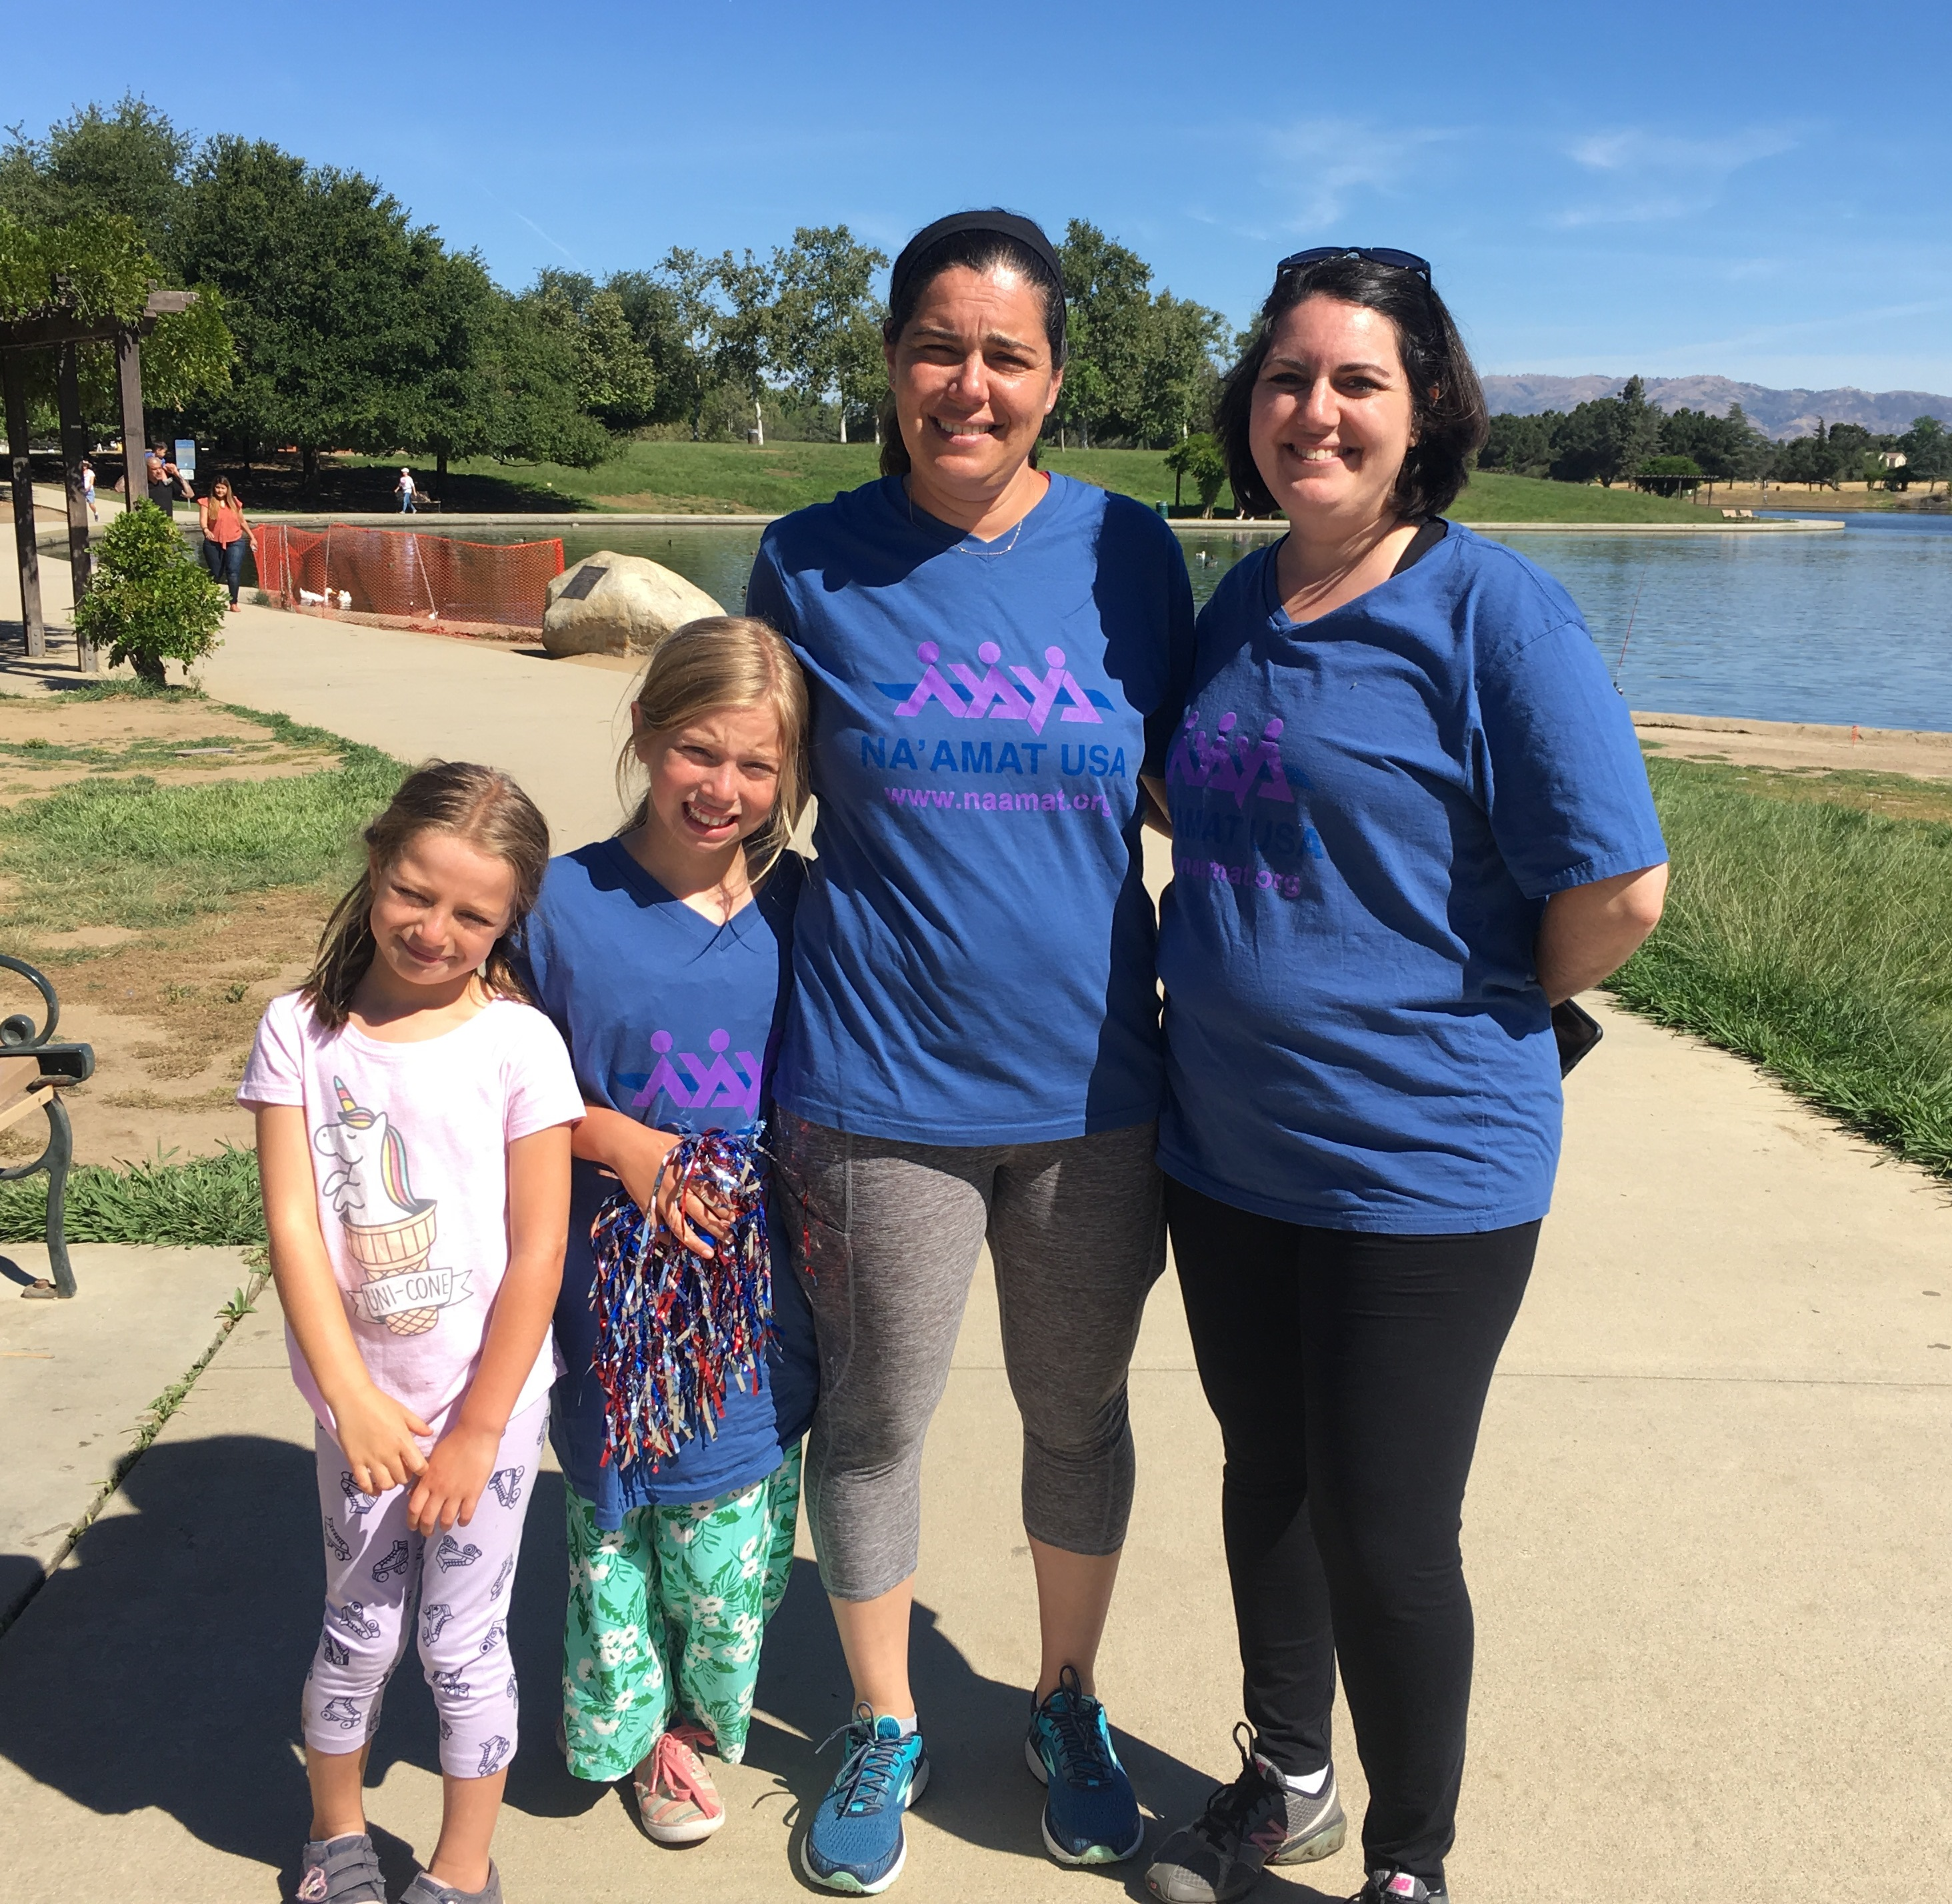 Community organization supporting Israel and women's rights - family walking in a 5K